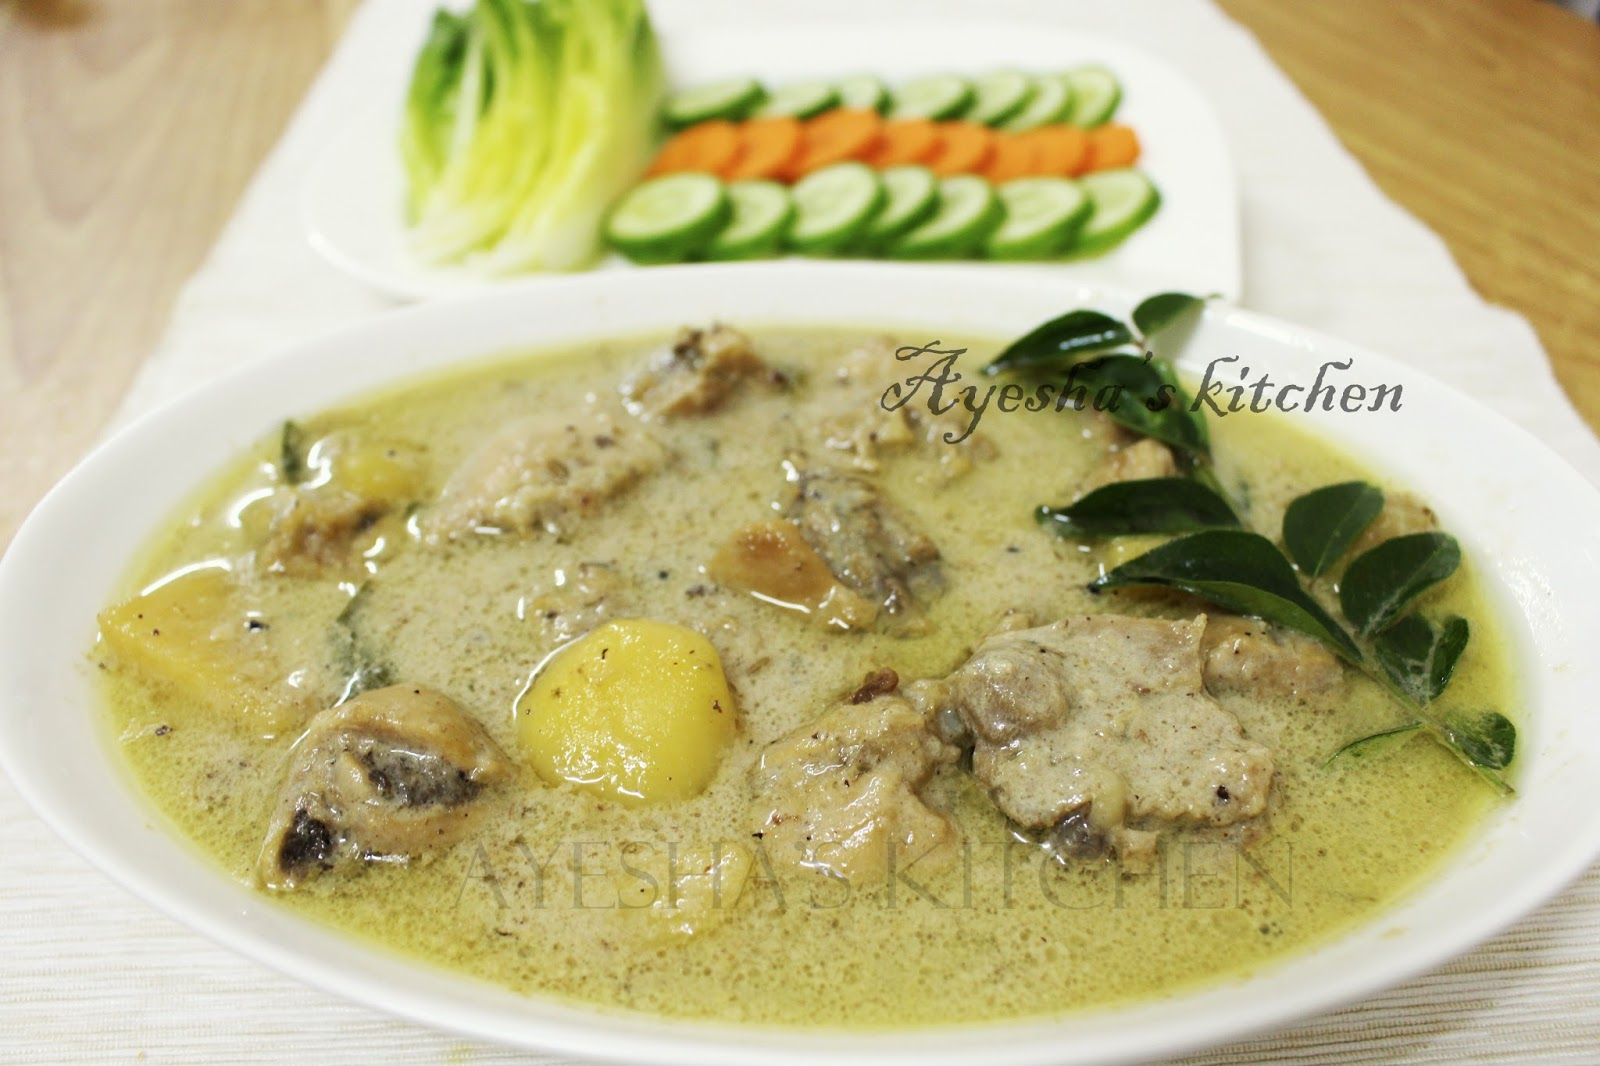 Chicken recipes chicken stew ayeshas kitchen yummy chicken recipe with coconut milk flavorful for breakfast as a combo sidedish forumfinder Images